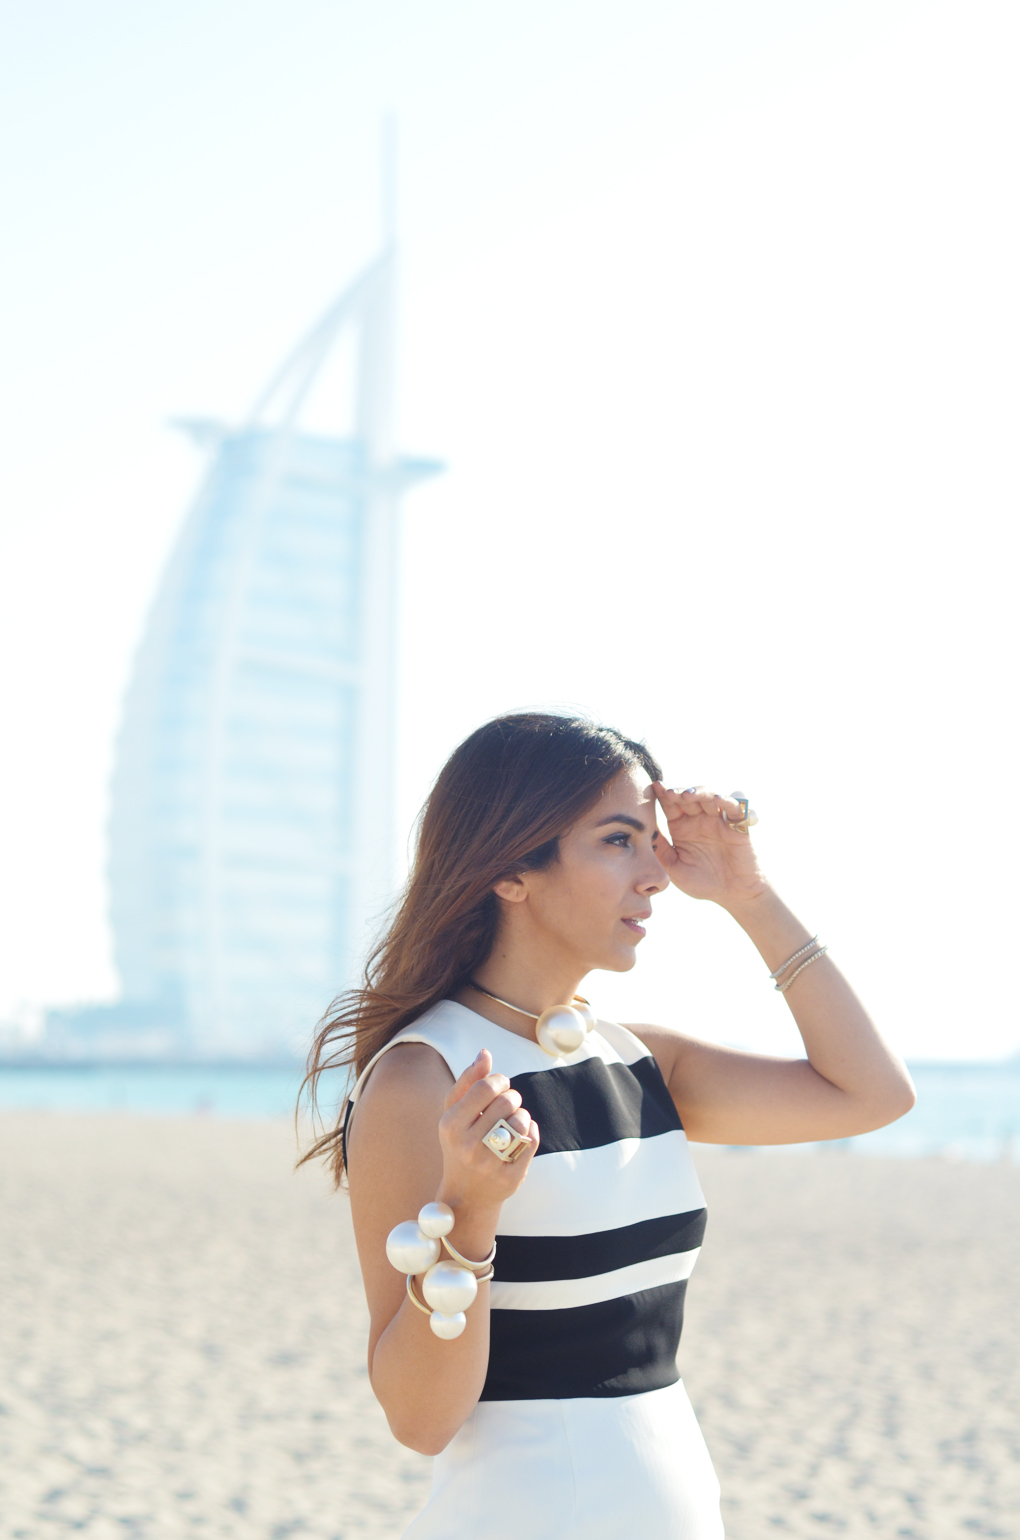 Lyla_Loves_Fashion_Chanel_SS14_Pearls_David_Koma_Burj_Al_Arab_0059